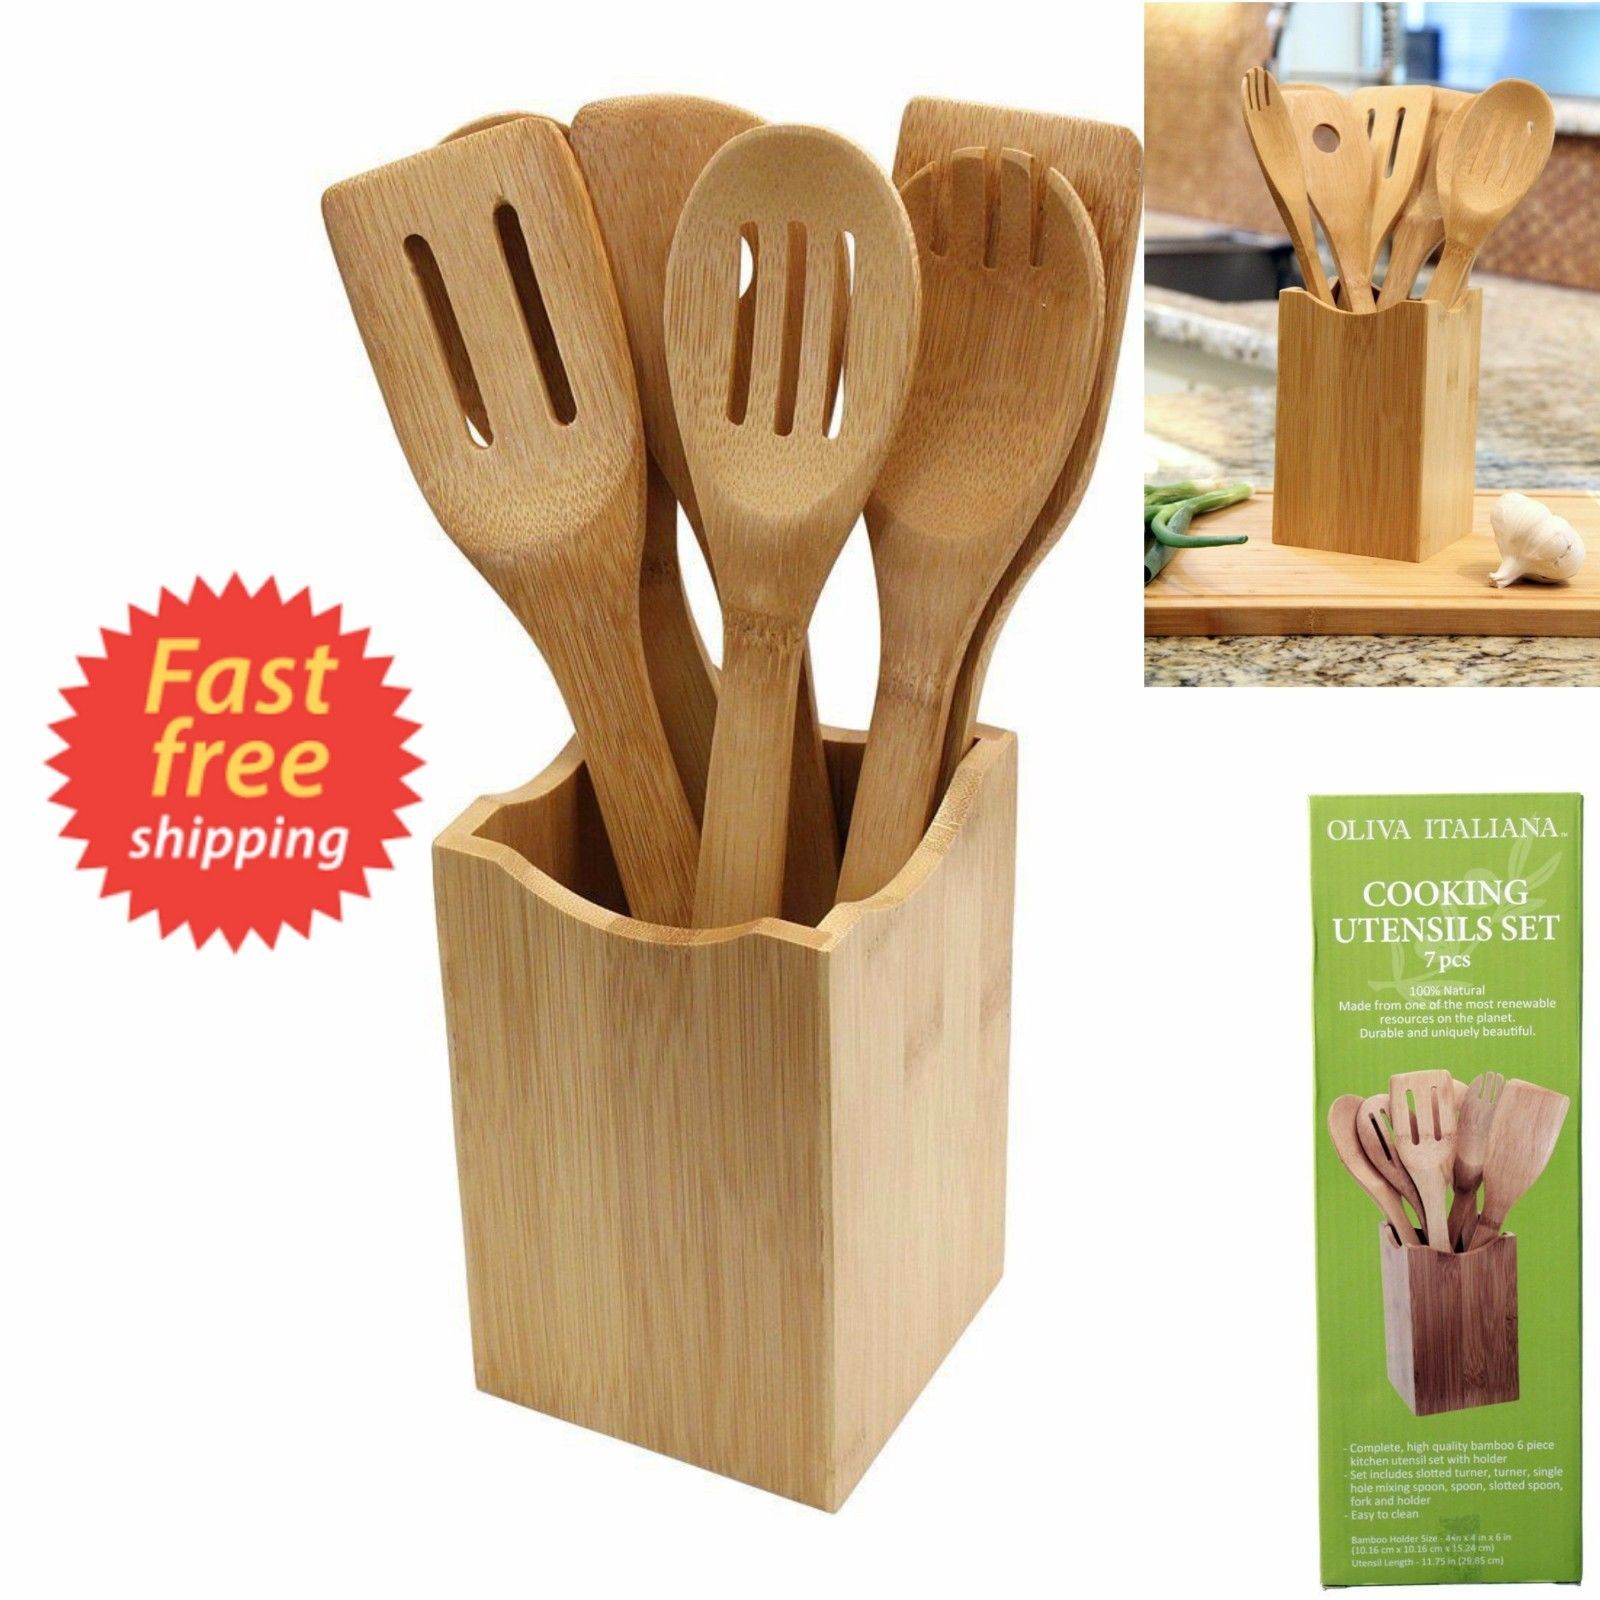 Wooden Cooking Kitchen Set 7 Piece Utensil Spoon Bamboo Tools